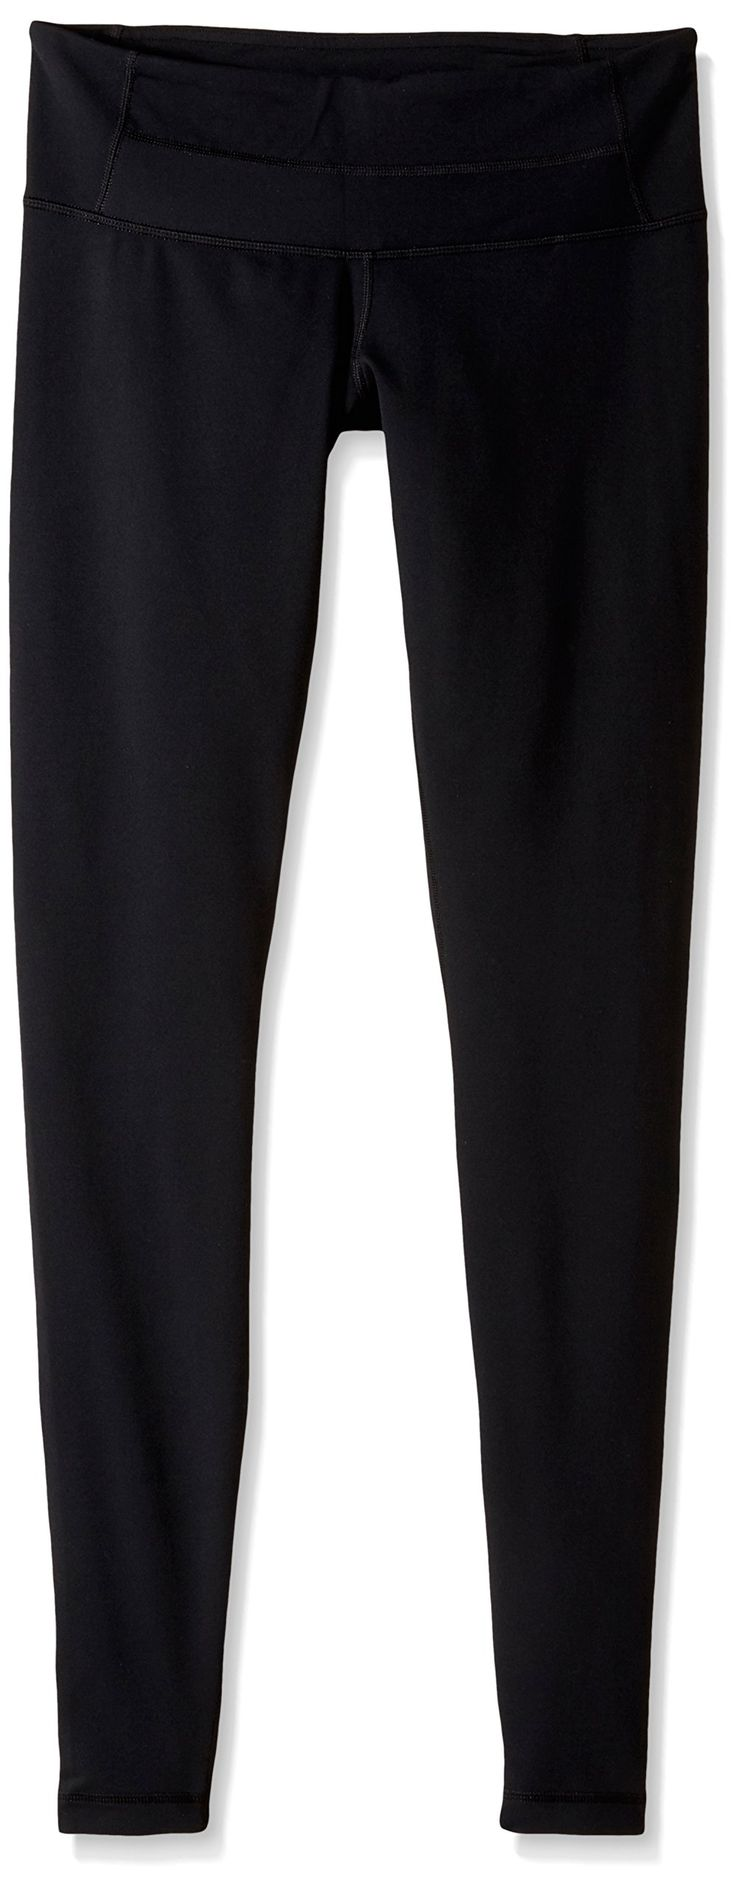 Columbia Sportswear Women's Halo Leggings, Black, 12xR. Striped jersey. Short sleeves. cotton-poly-blend fabric.